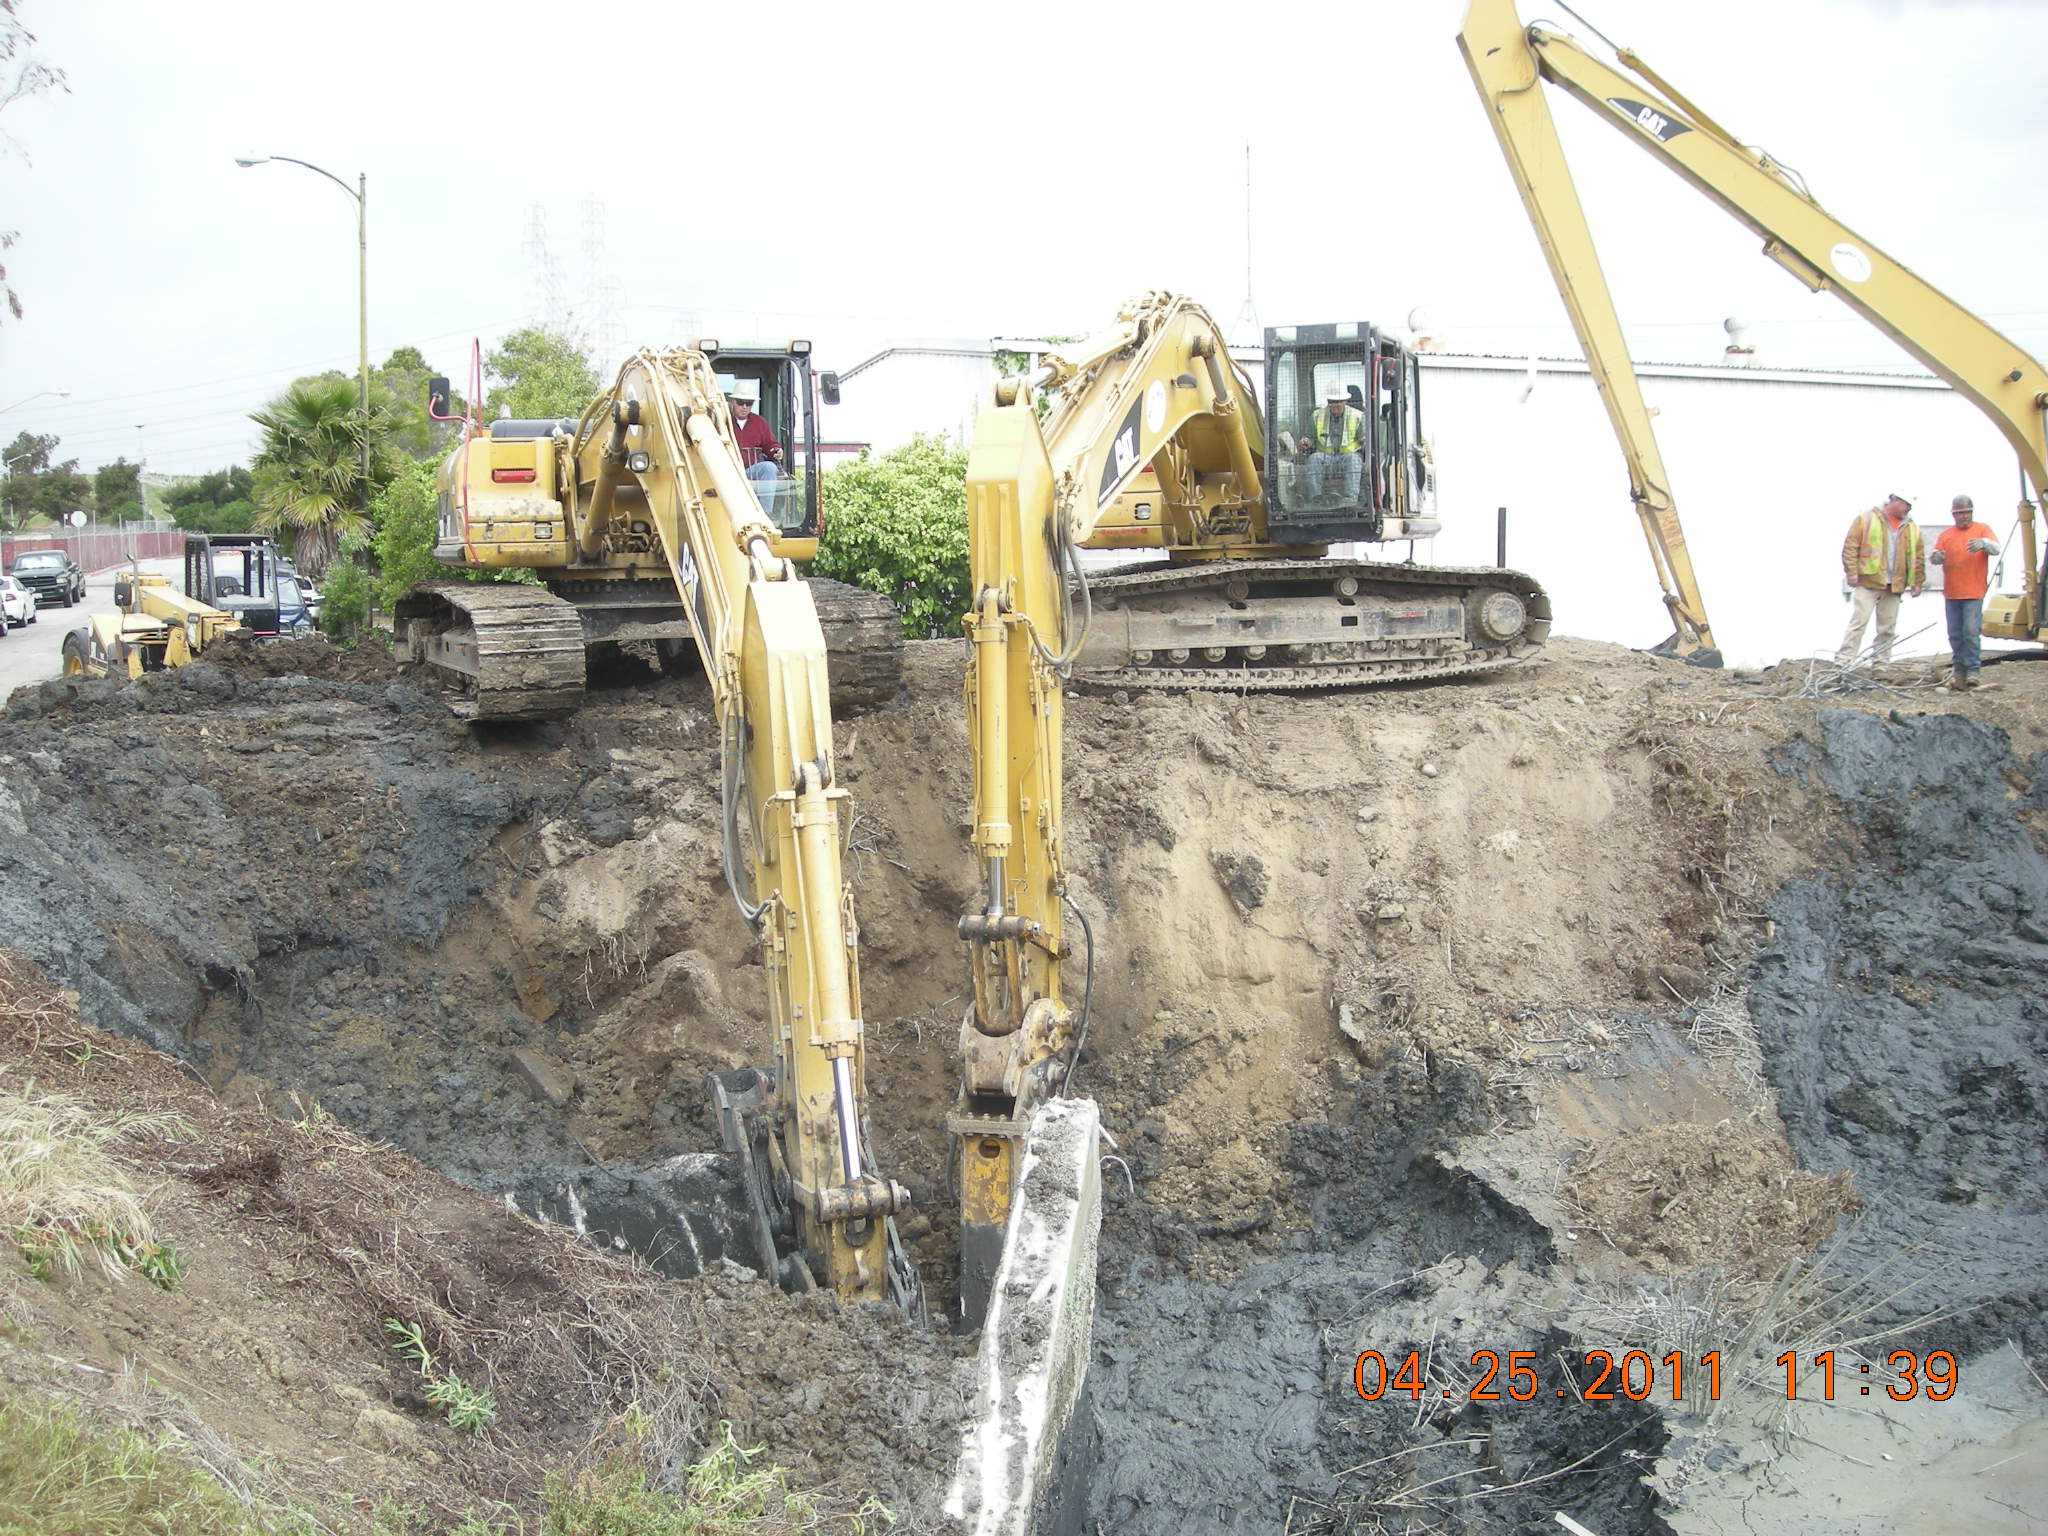 Removal of abandoned outfall structure from Sanitary Sewer plant at Seal Slough